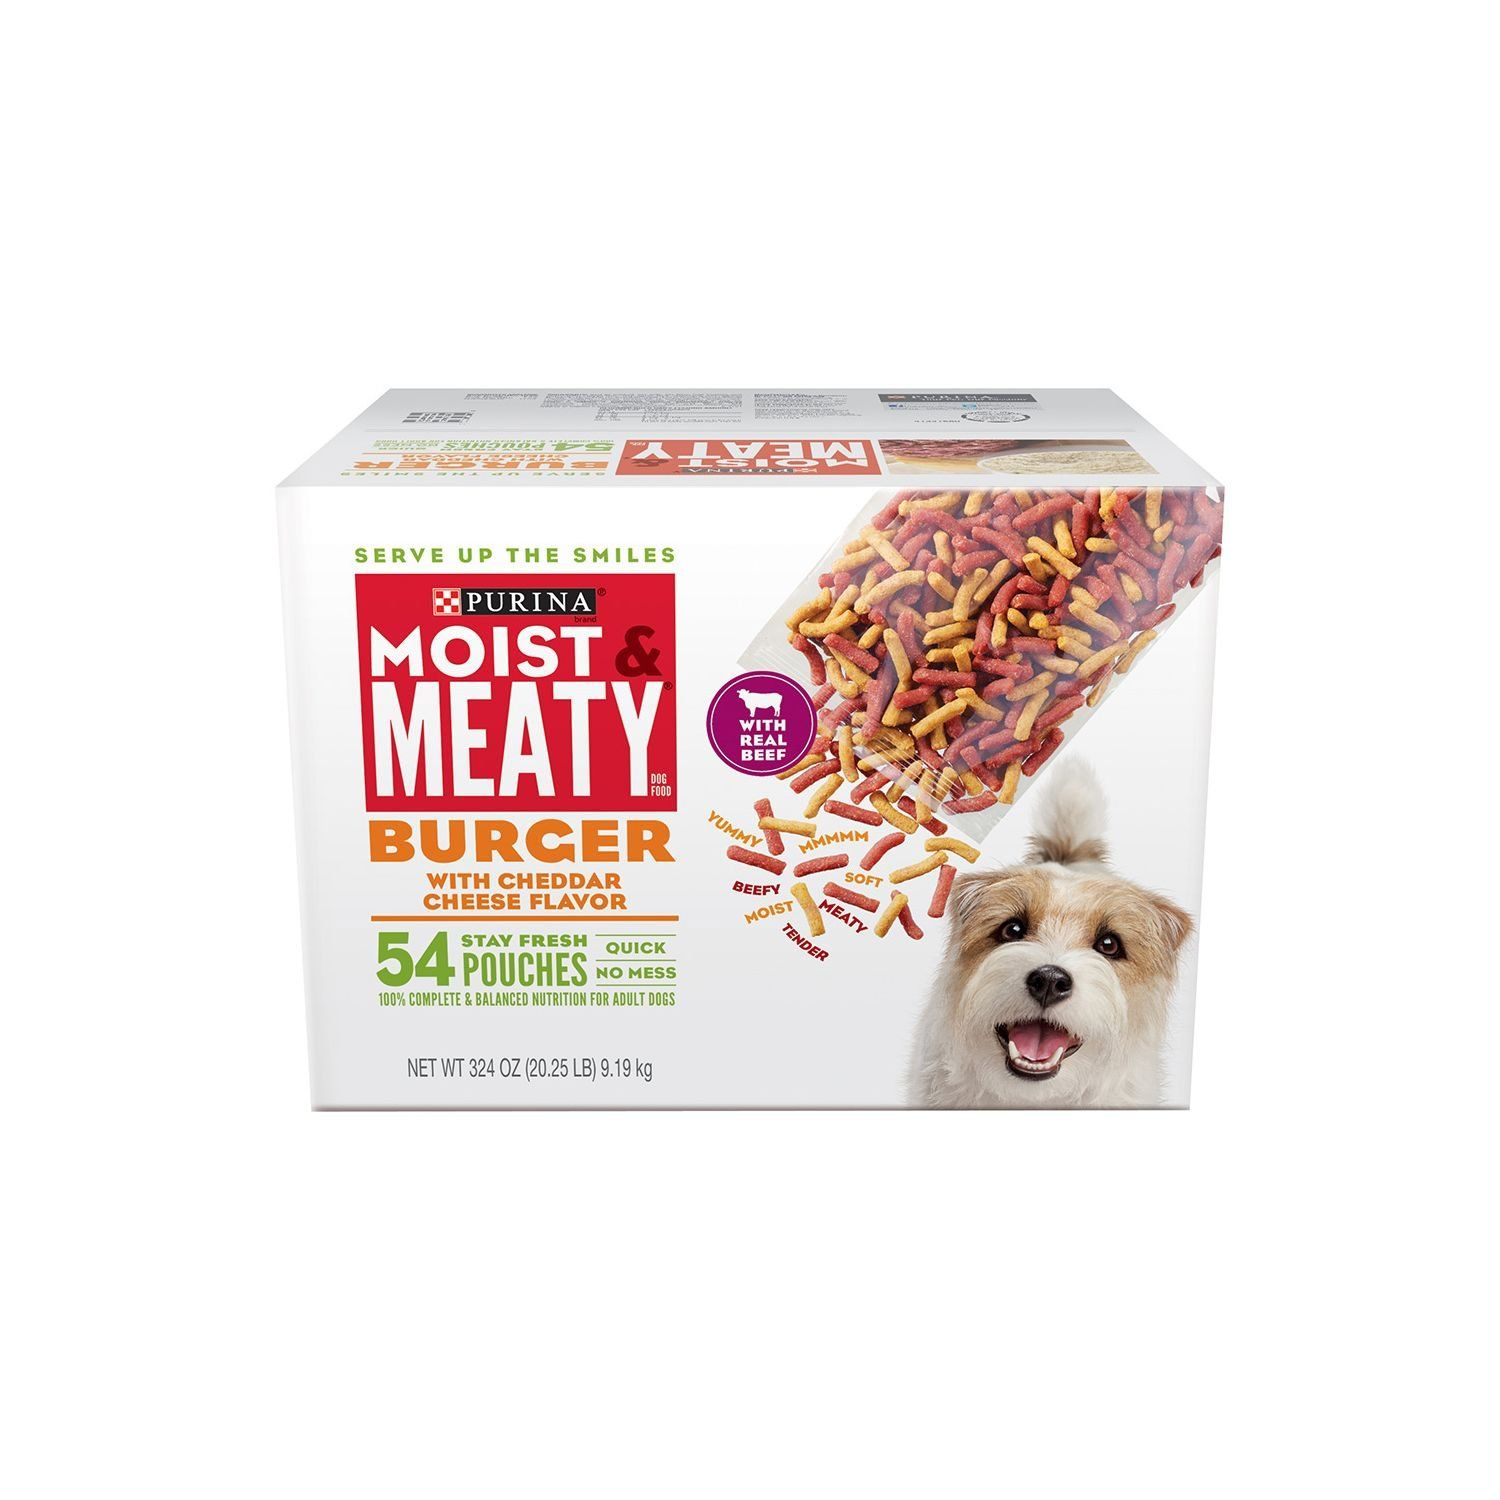 Purina Moist And Meaty Burger For Pets With Cheddar Cheese Flavor